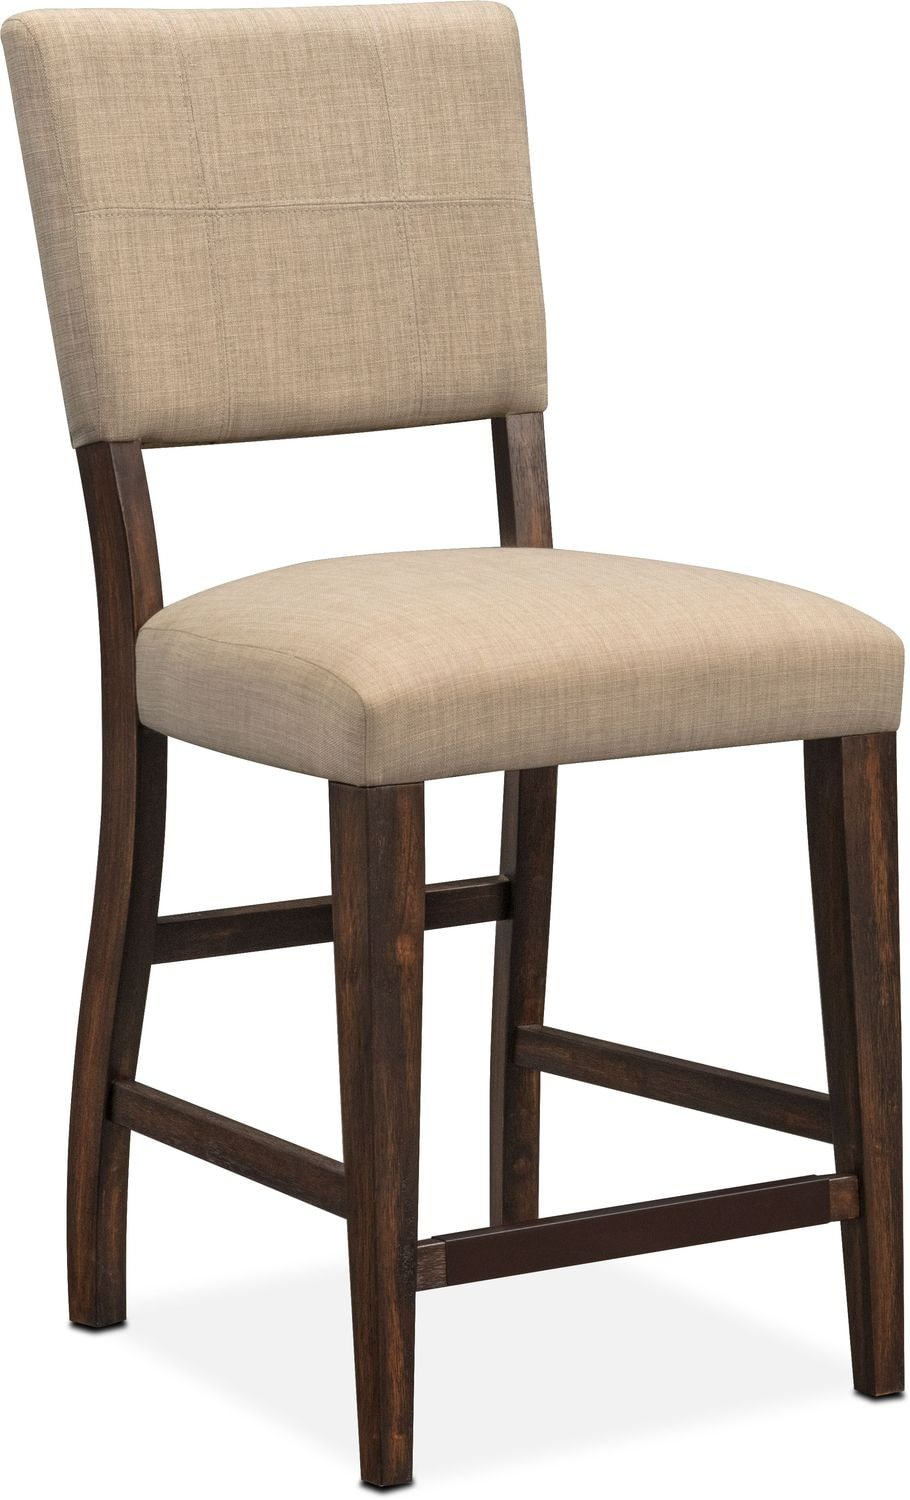 Tribeca Counter-Height Upholstered Dining Chair